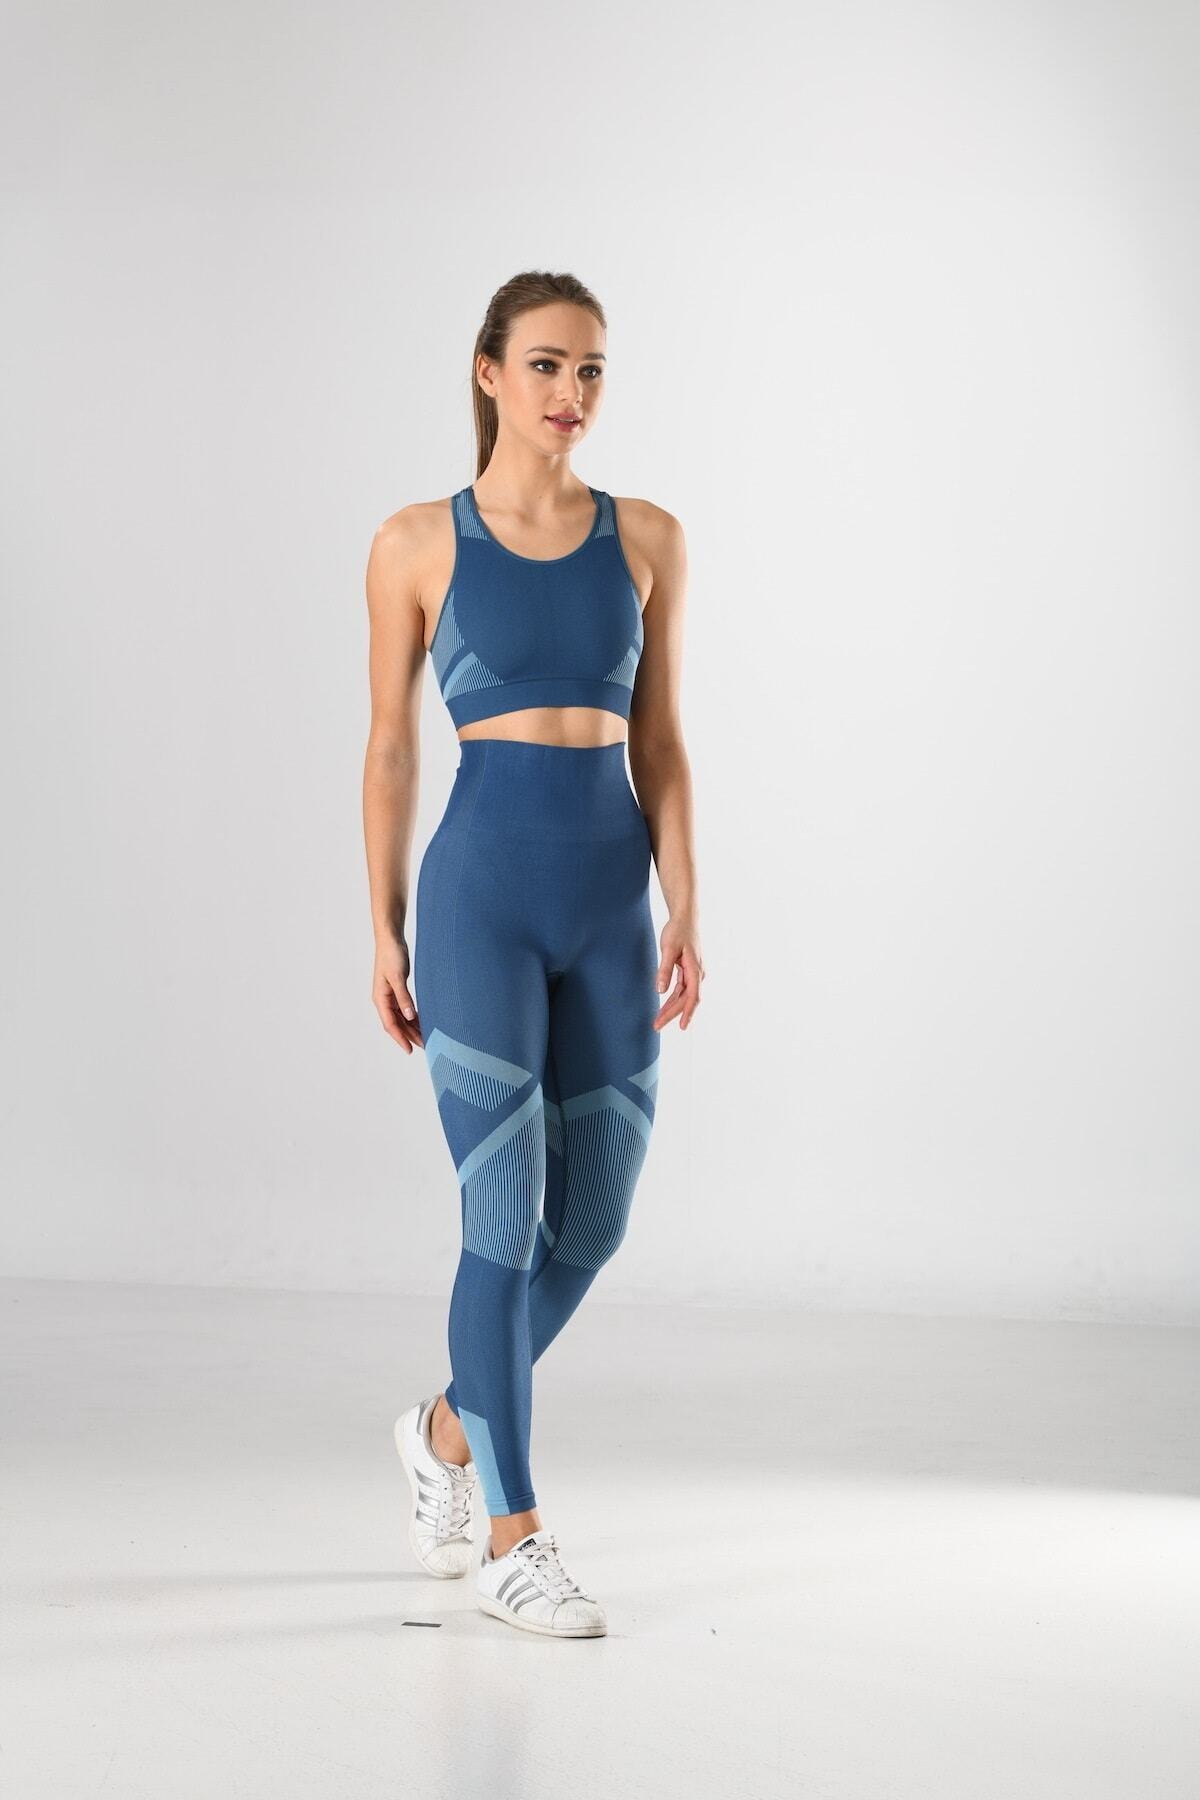 Women's Blue Pattern Sports Bustier And Tights Suit Knitted Seamless Seamless Yoga & Fitness & Plates